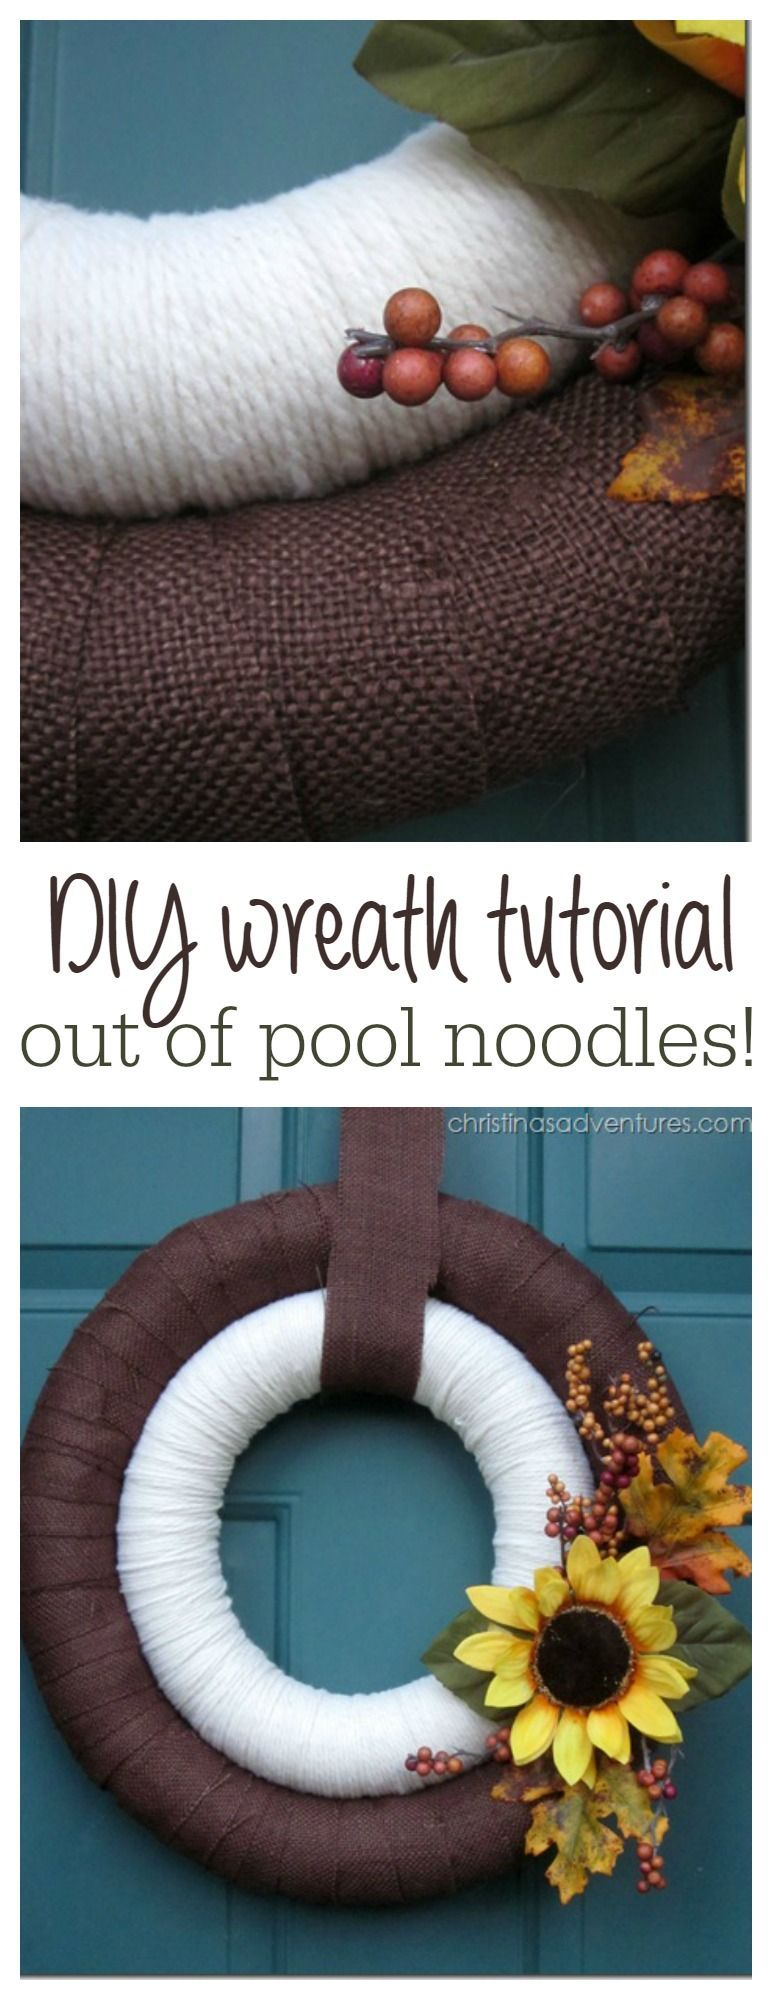 DIY Double Fall Wreaths #poolnoodlewreath Budget friendly and adorable wreath - made out of pool noodles!  Great DIY tutorial! #poolnoodlewreath